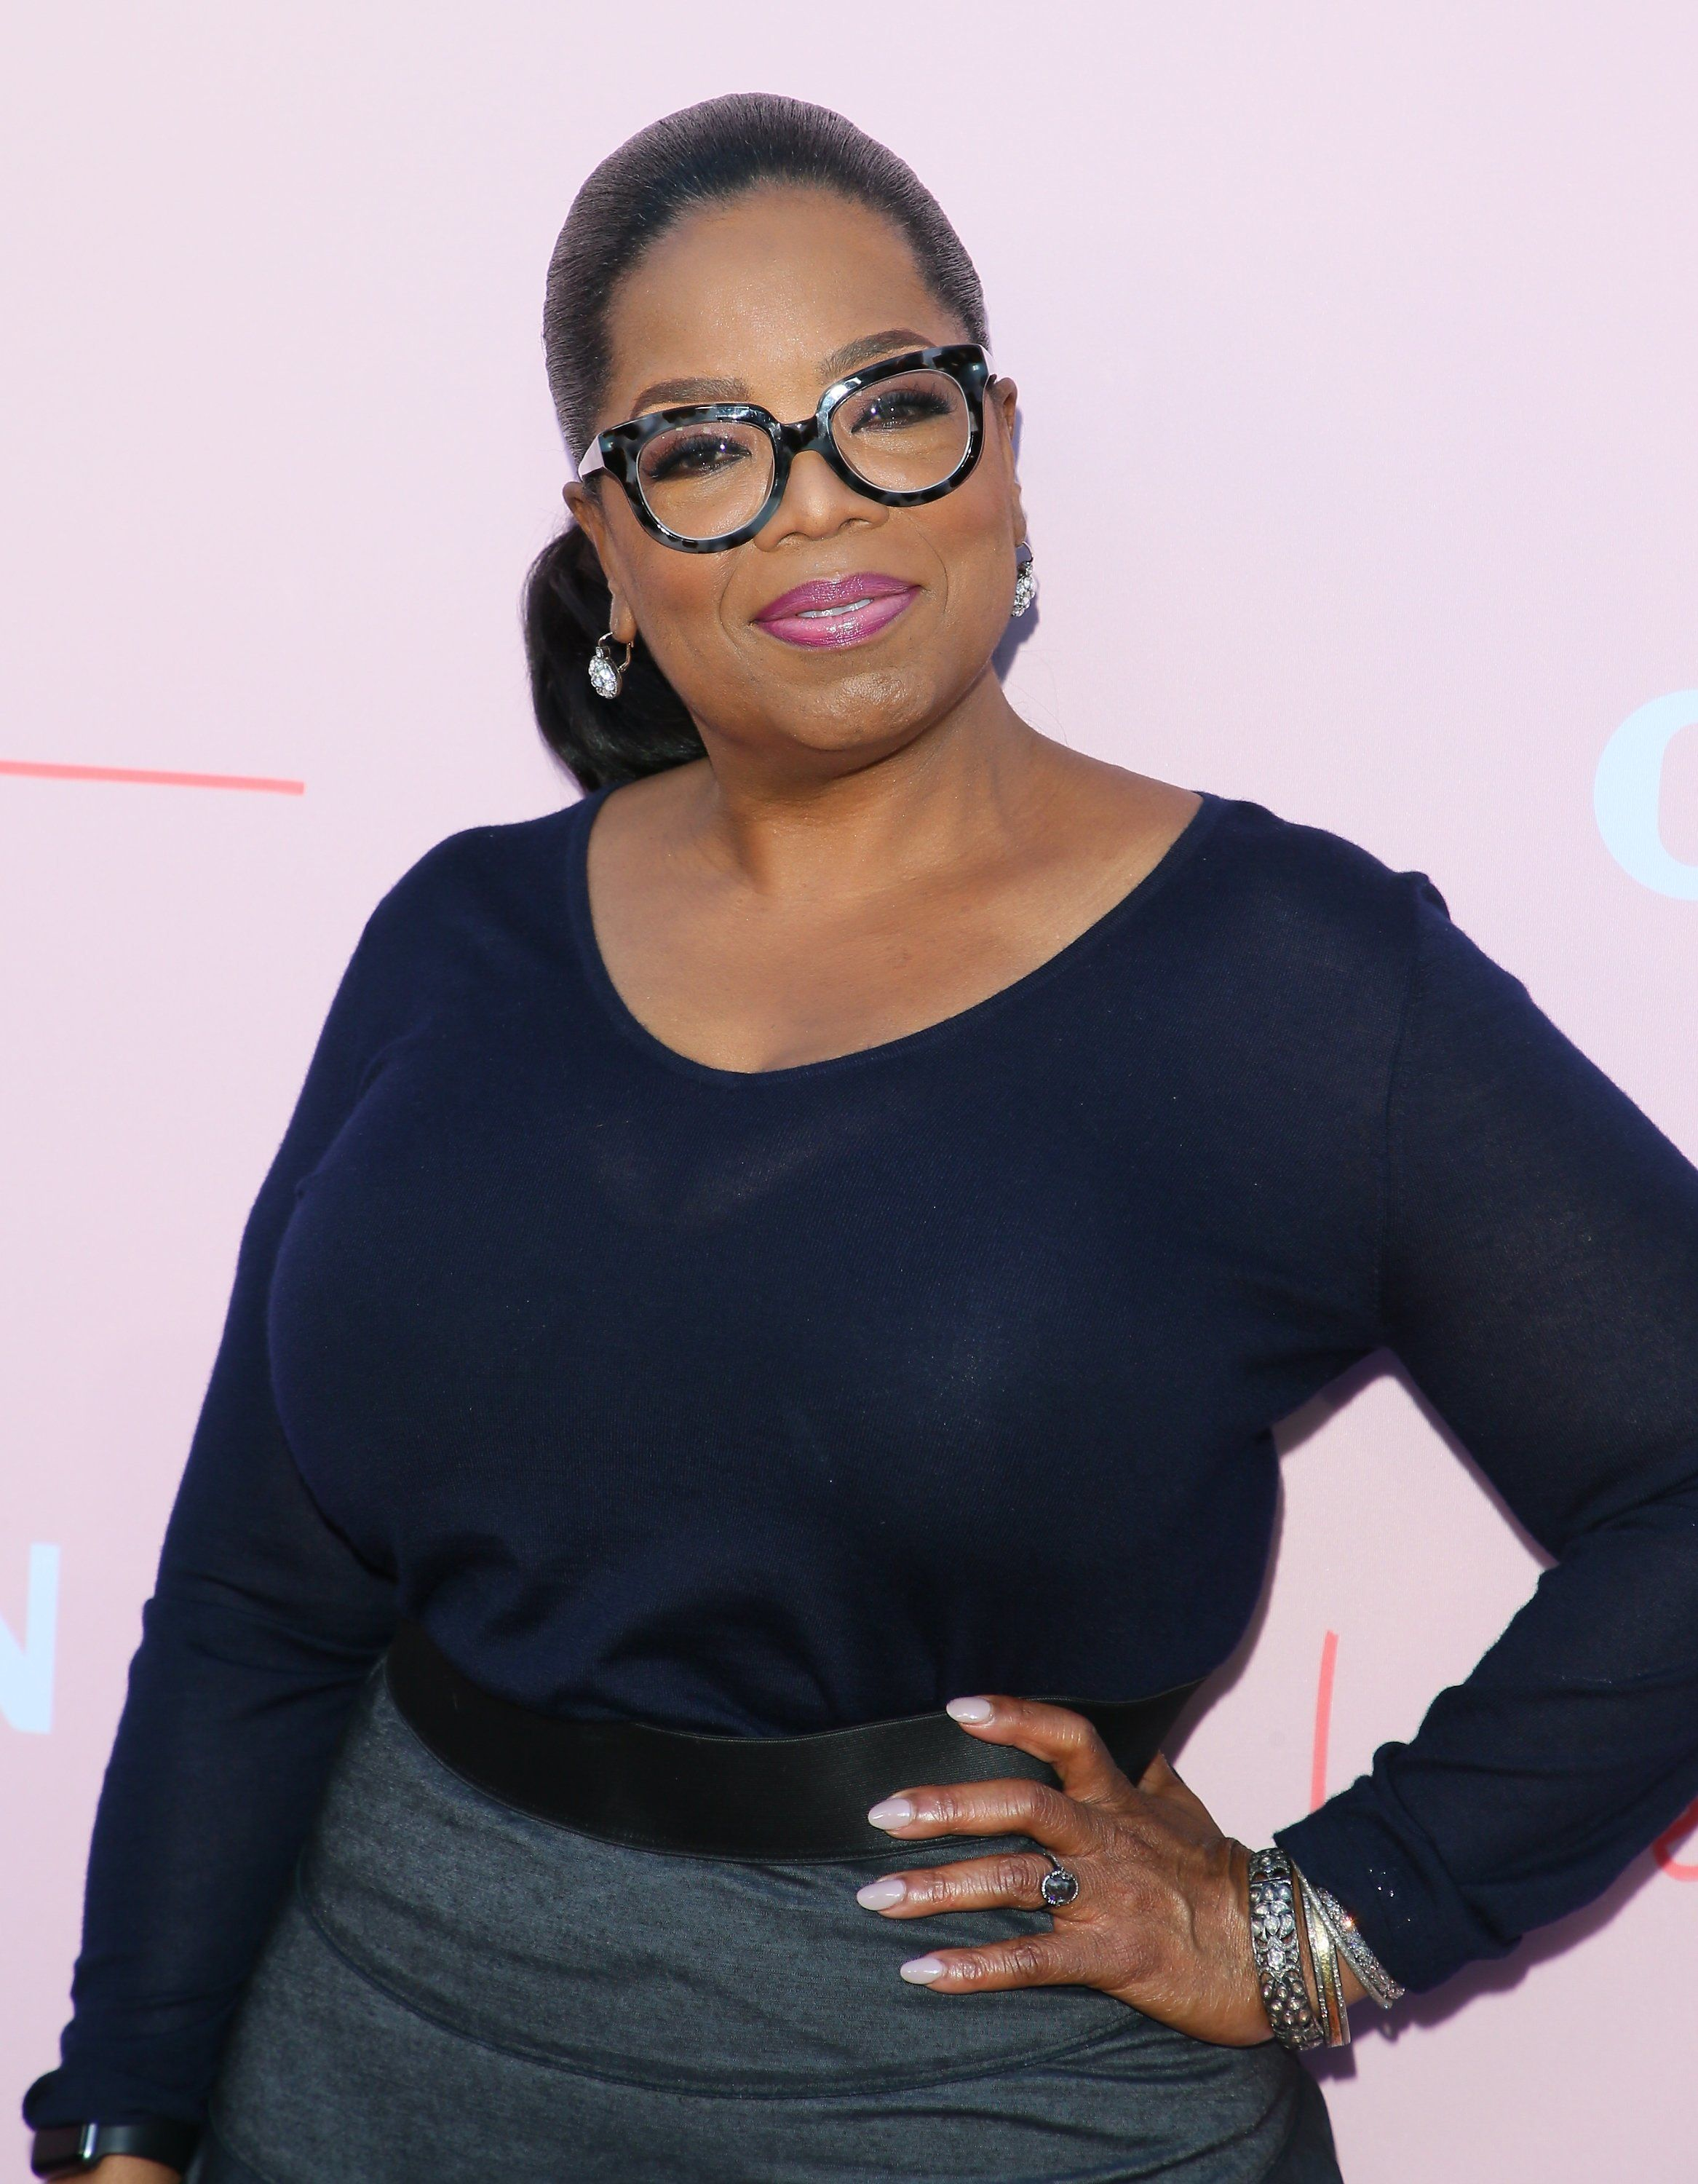 LOS ANGELES, CA - JUNE 11: Oprah Winfrey  attends the Los Angeles premiere of OWN's 'Love Is_' held at NeueHouse Hollywood on June 11, 2018 in Los Angeles, California.  (Photo by JB Lacroix/WireImage)